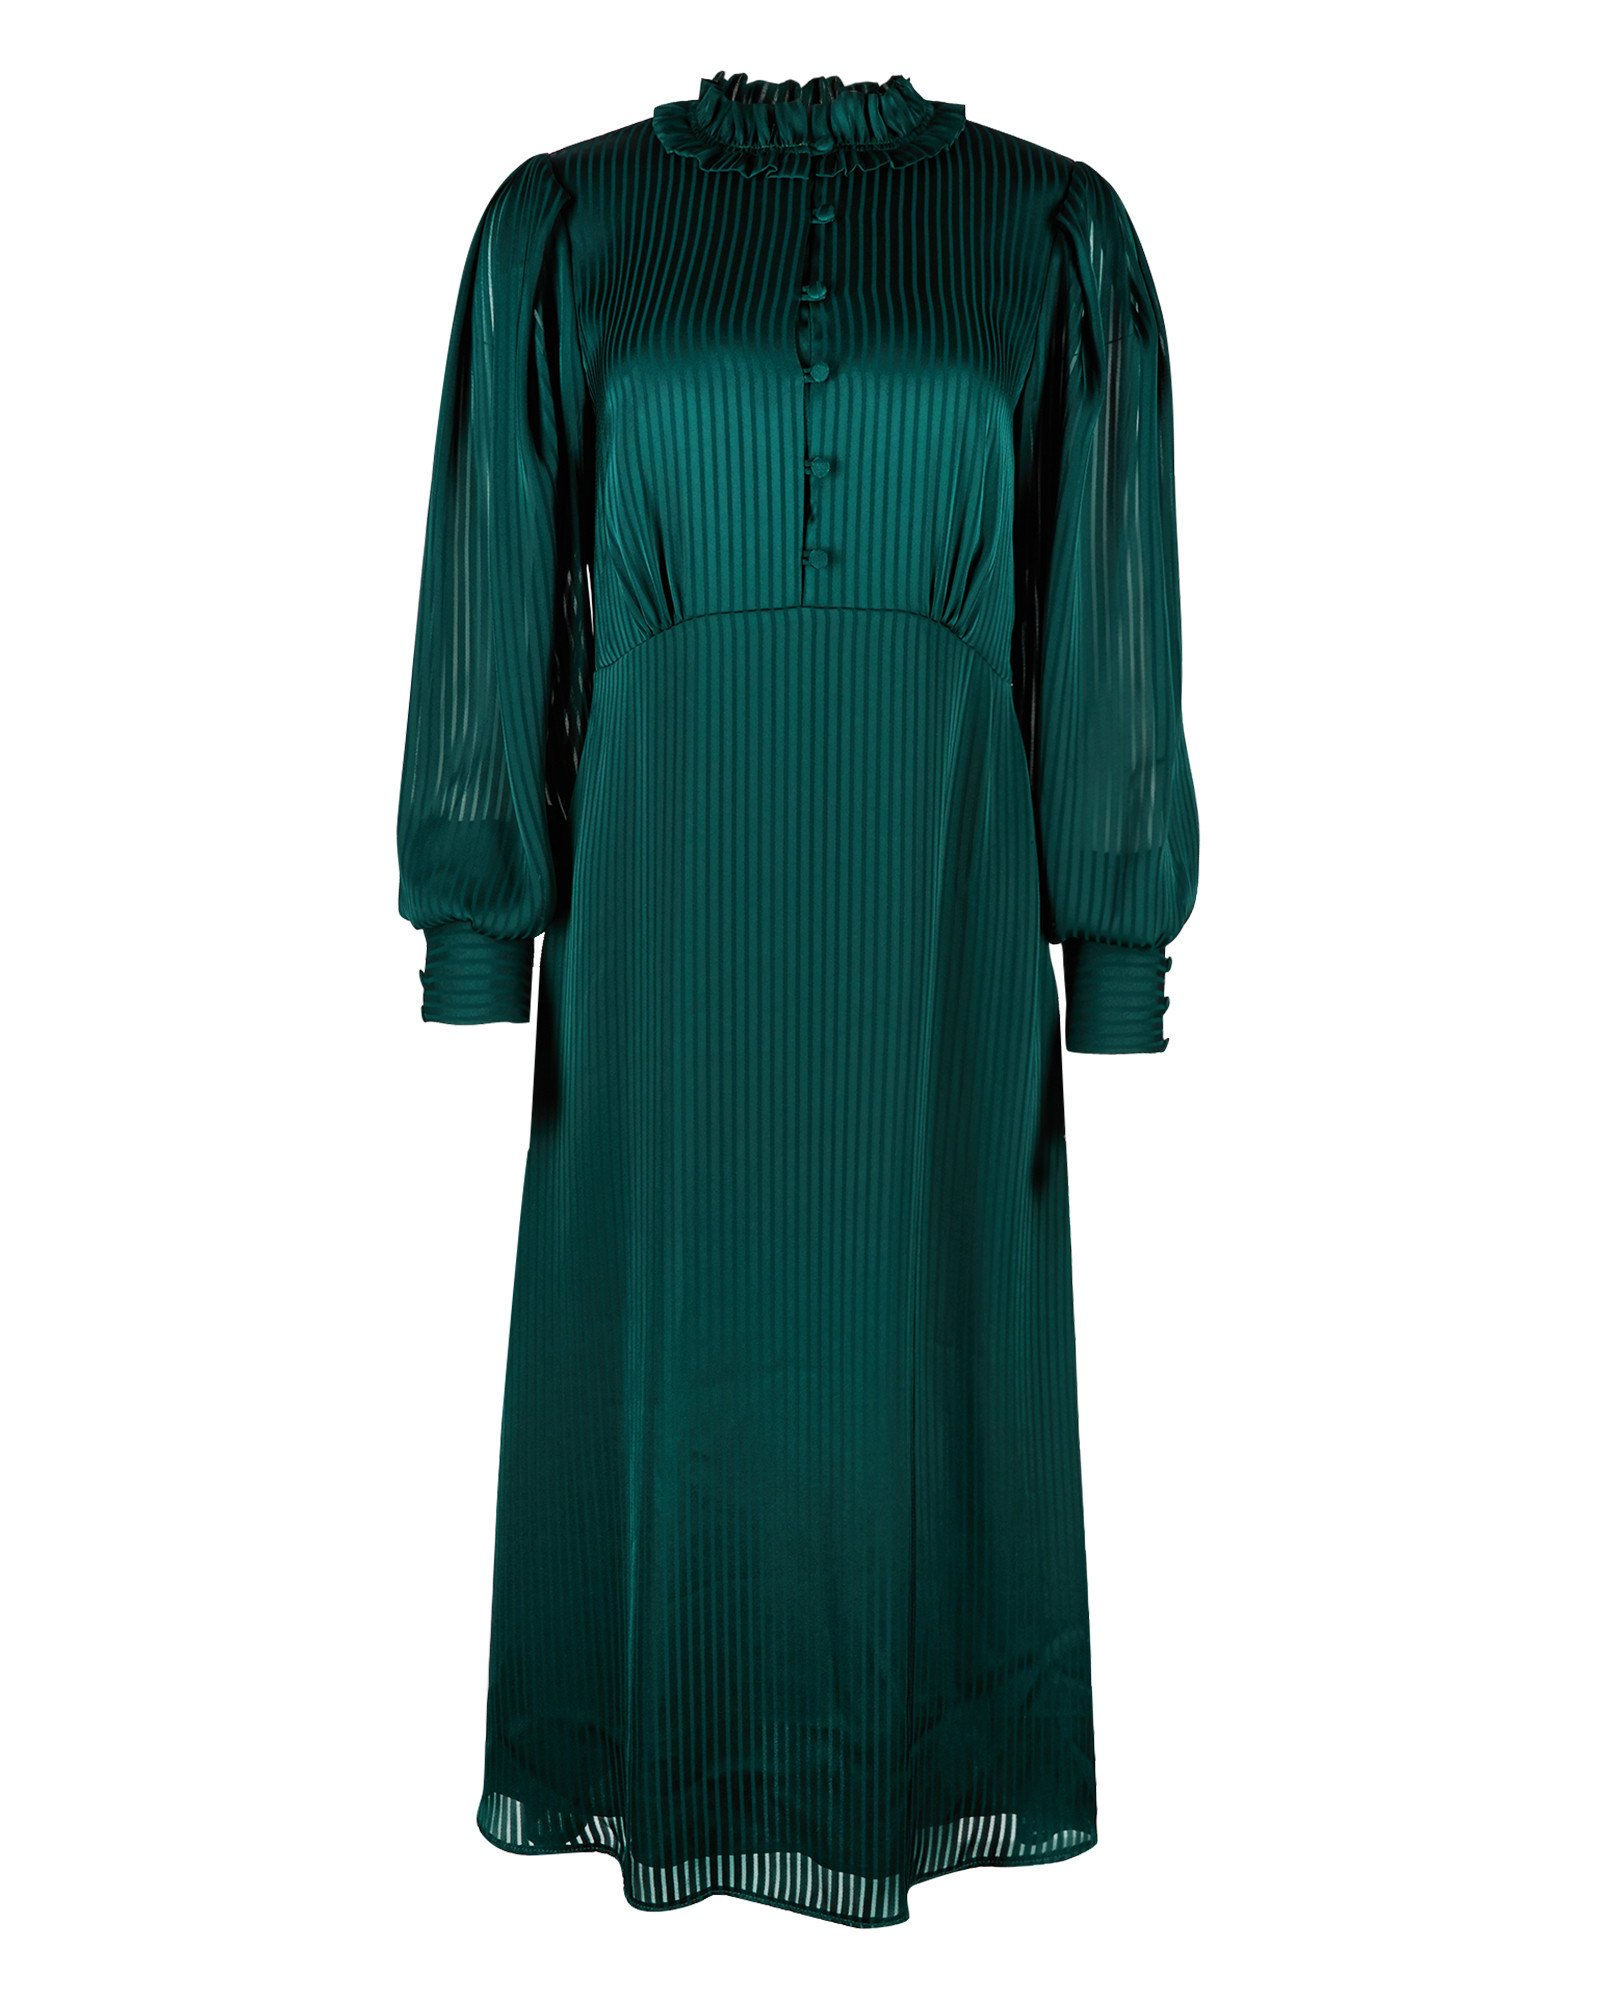 Jacquard Sheer Striped Green Midi Dress